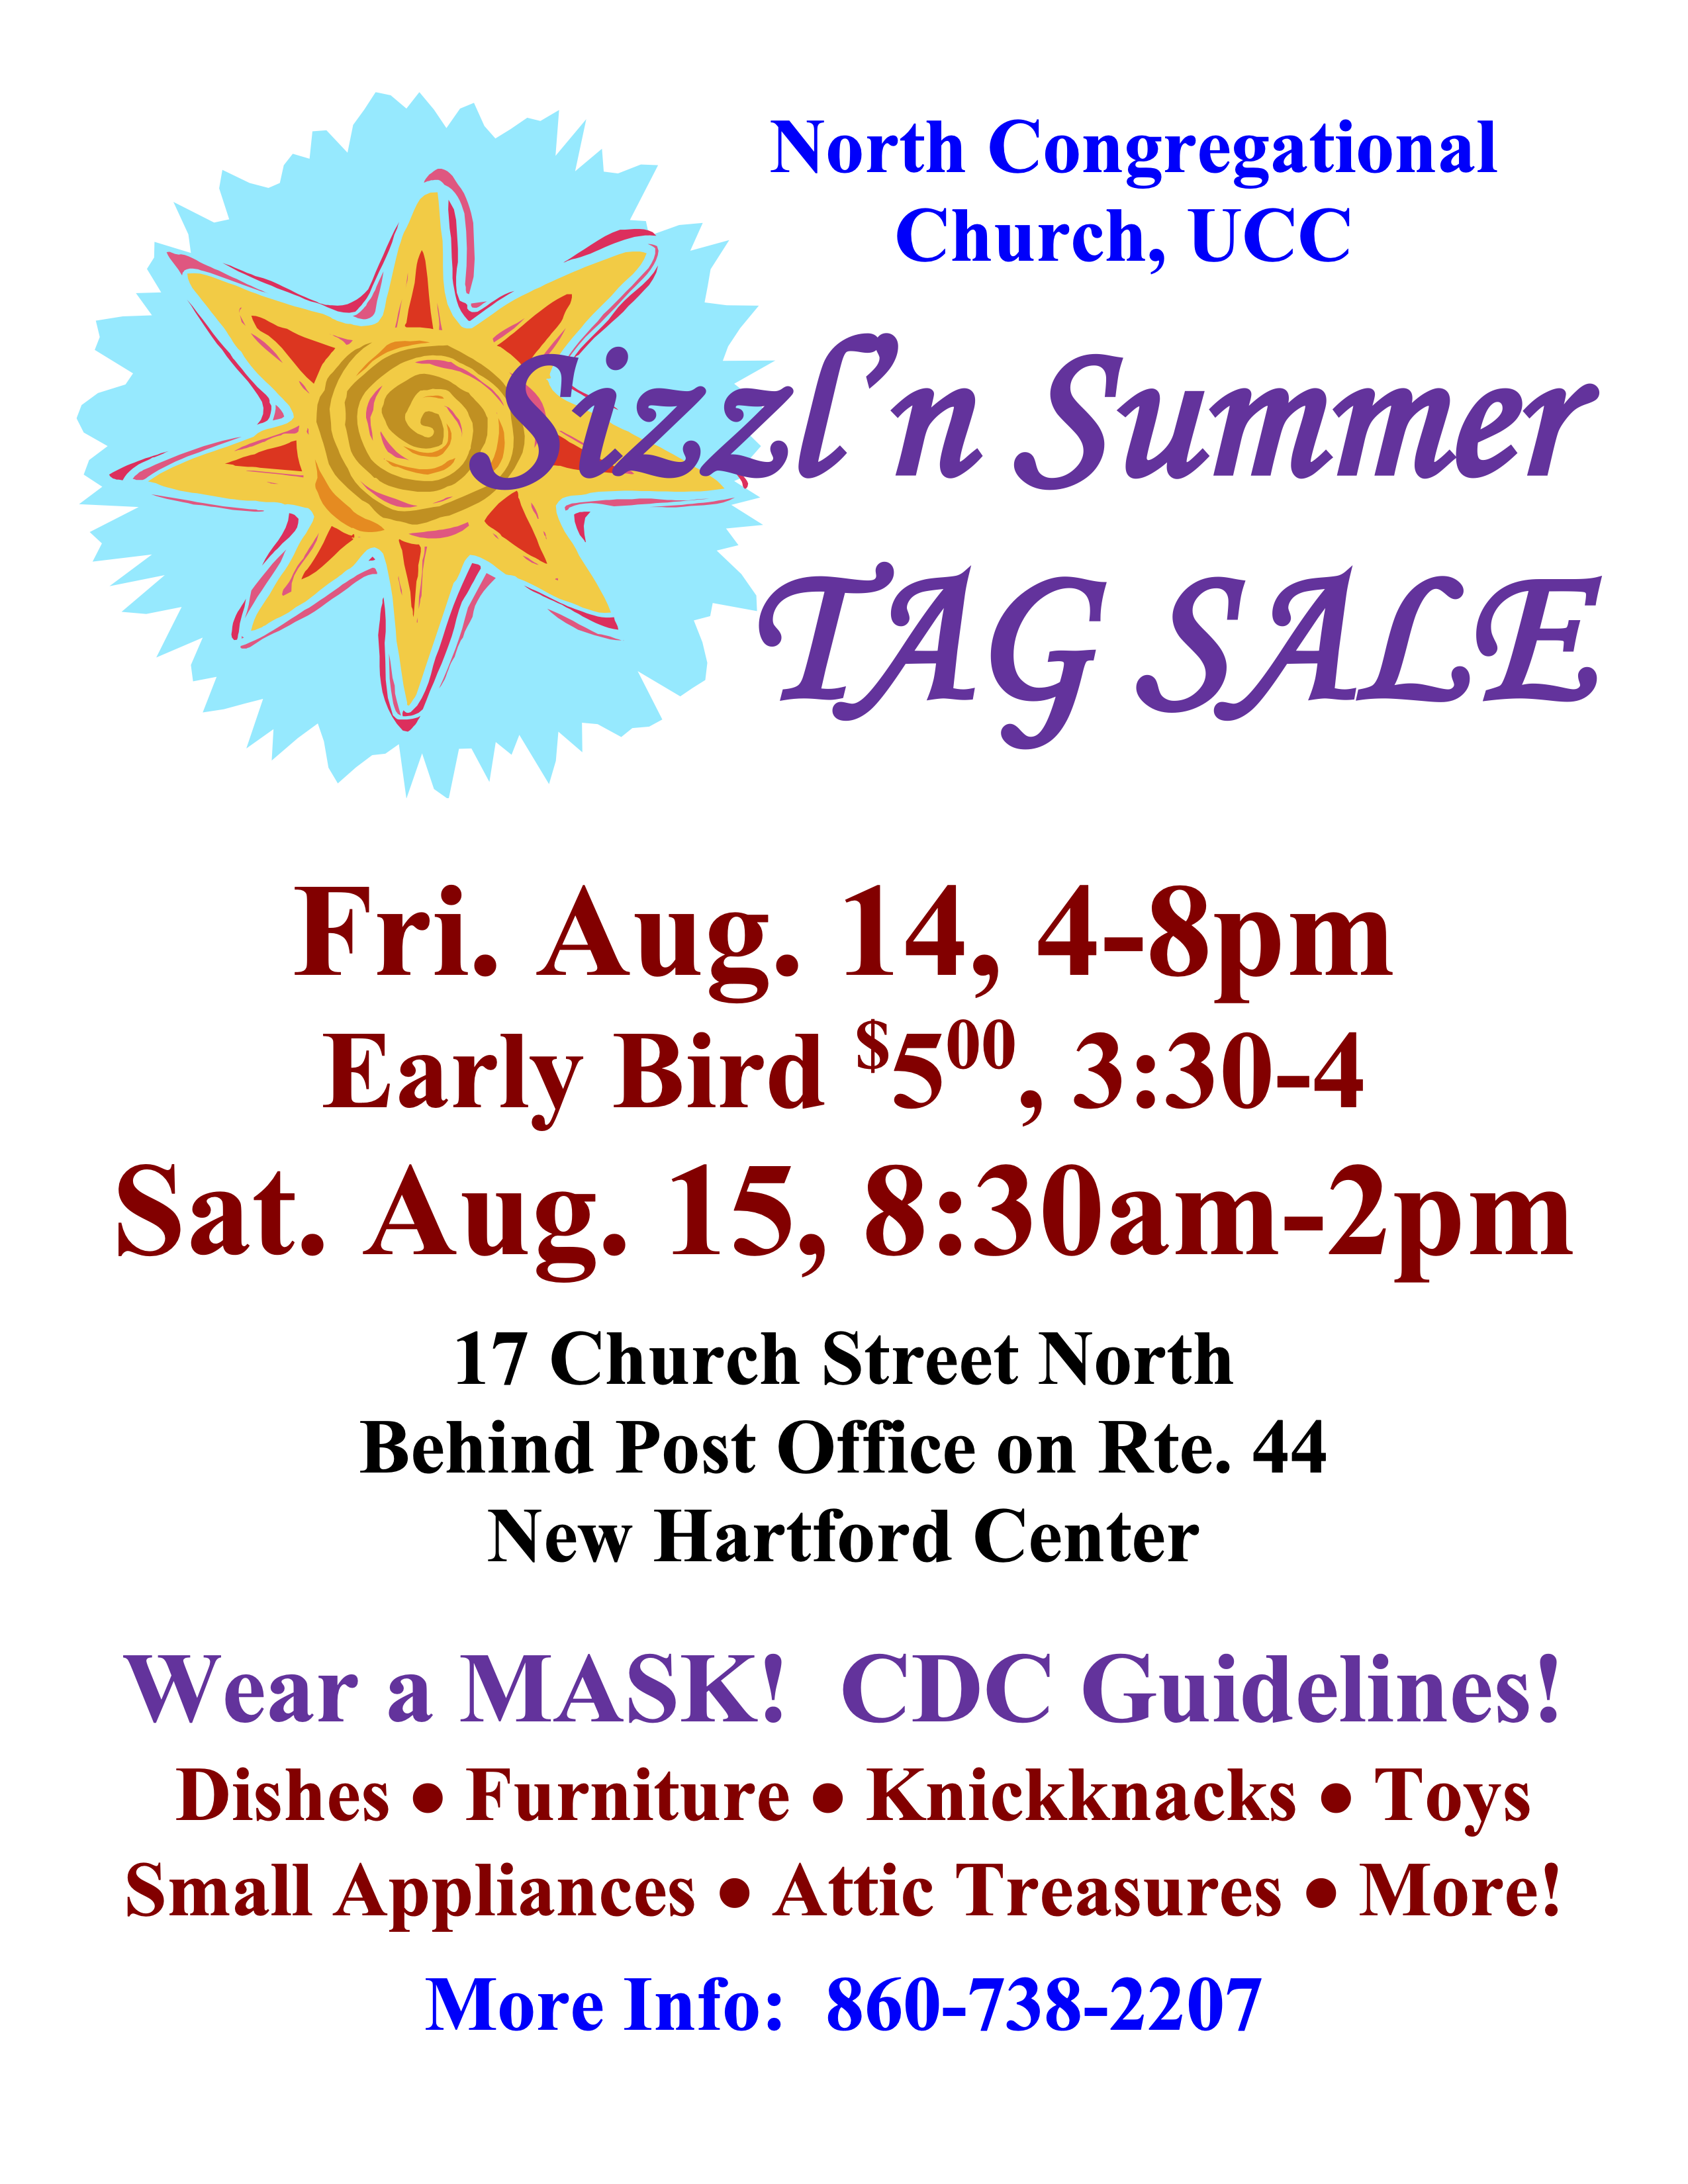 Tag Sale Poster 2020